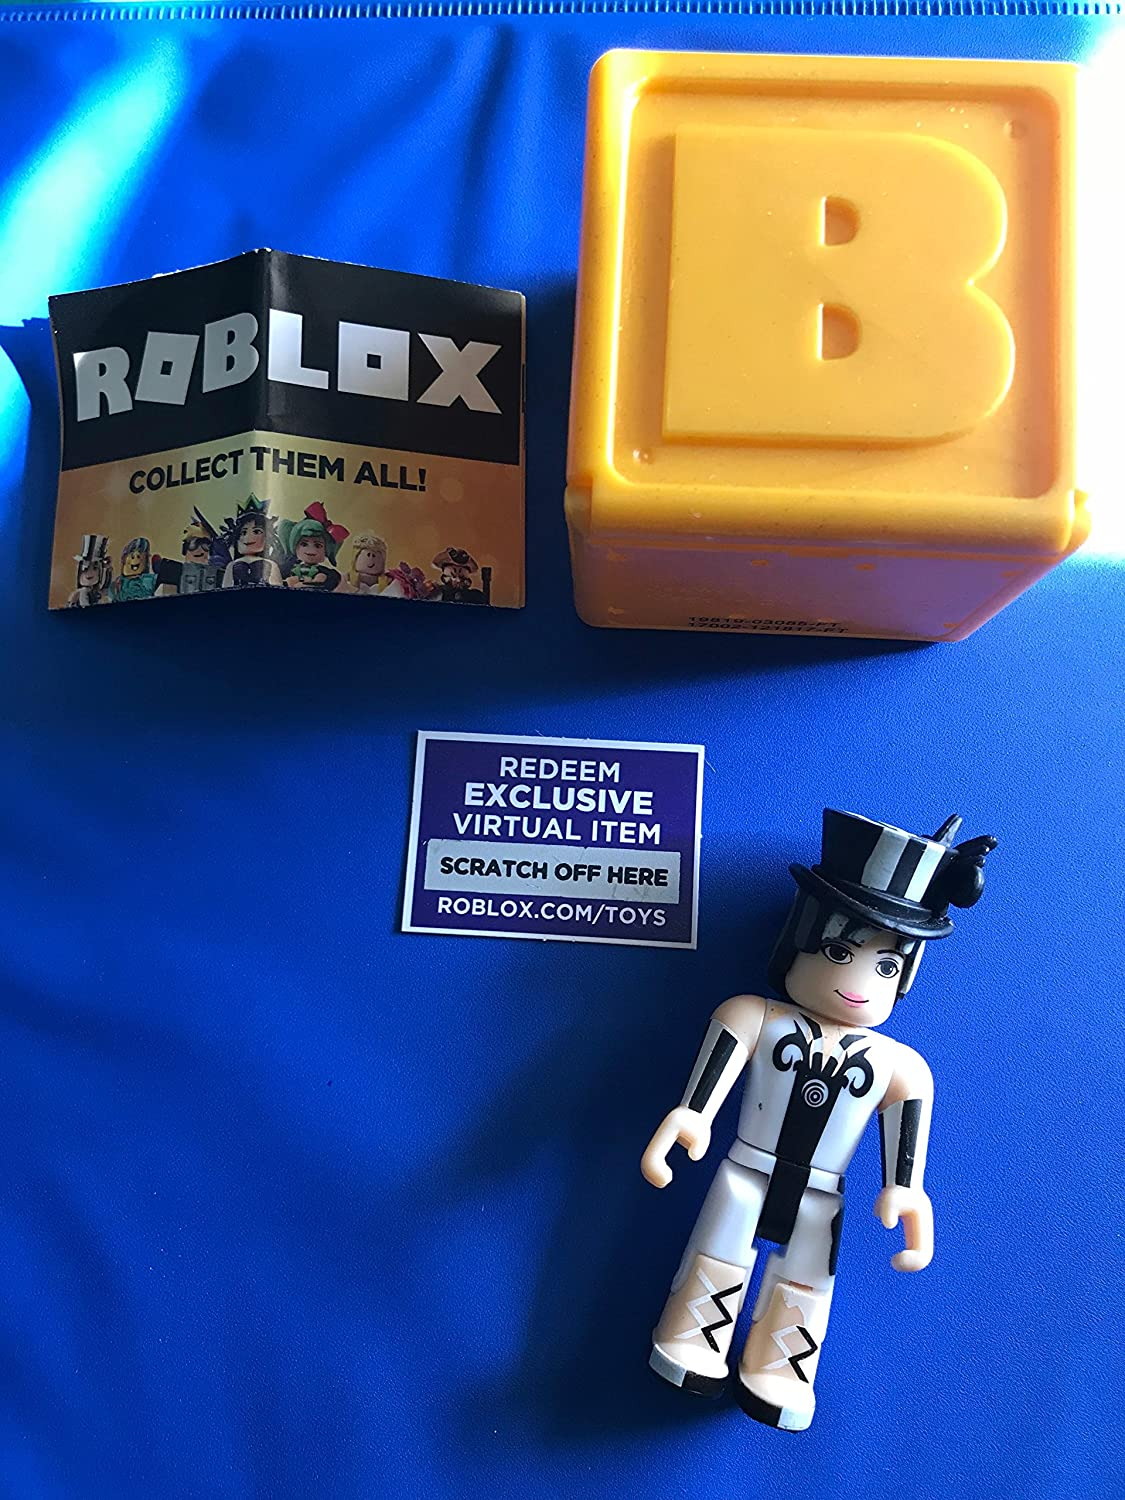 Roblox Rockstar Celebrity Gold Series 1 Mystery 3 Toys - Amazon Com Roblox Gold Celebrity Series Fuzzywoo Action Figure